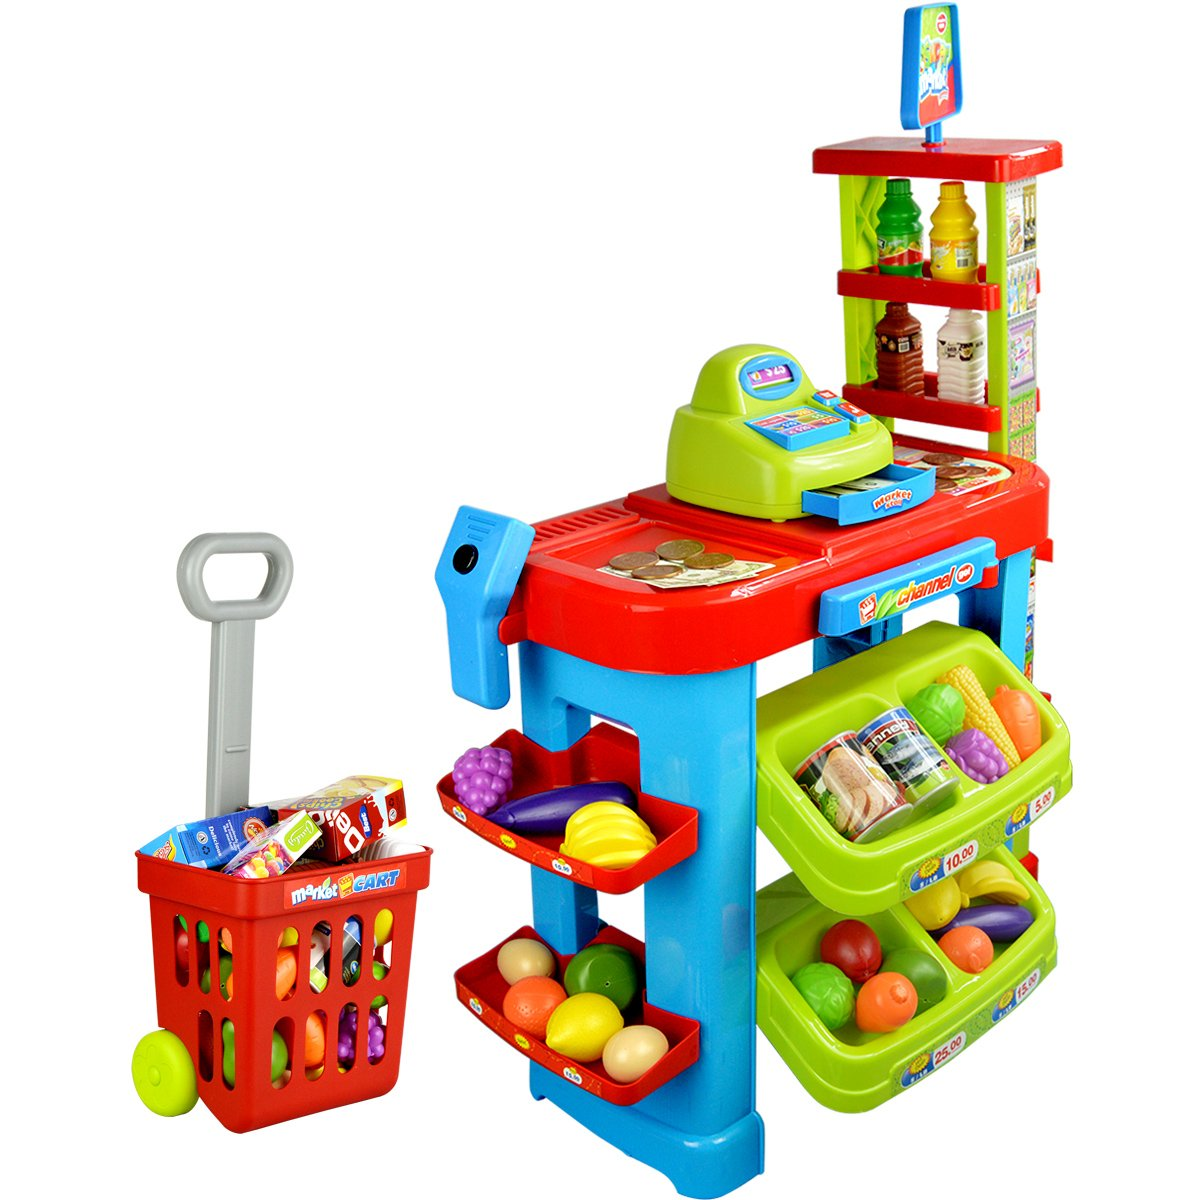 PowerTRC® Fun Super Market Pretend Play Toy Market Play Set with Toy Cash Register, Working Scanner, Shopping Cart, Pretend Food and Money by PowerTRC (Image #2)